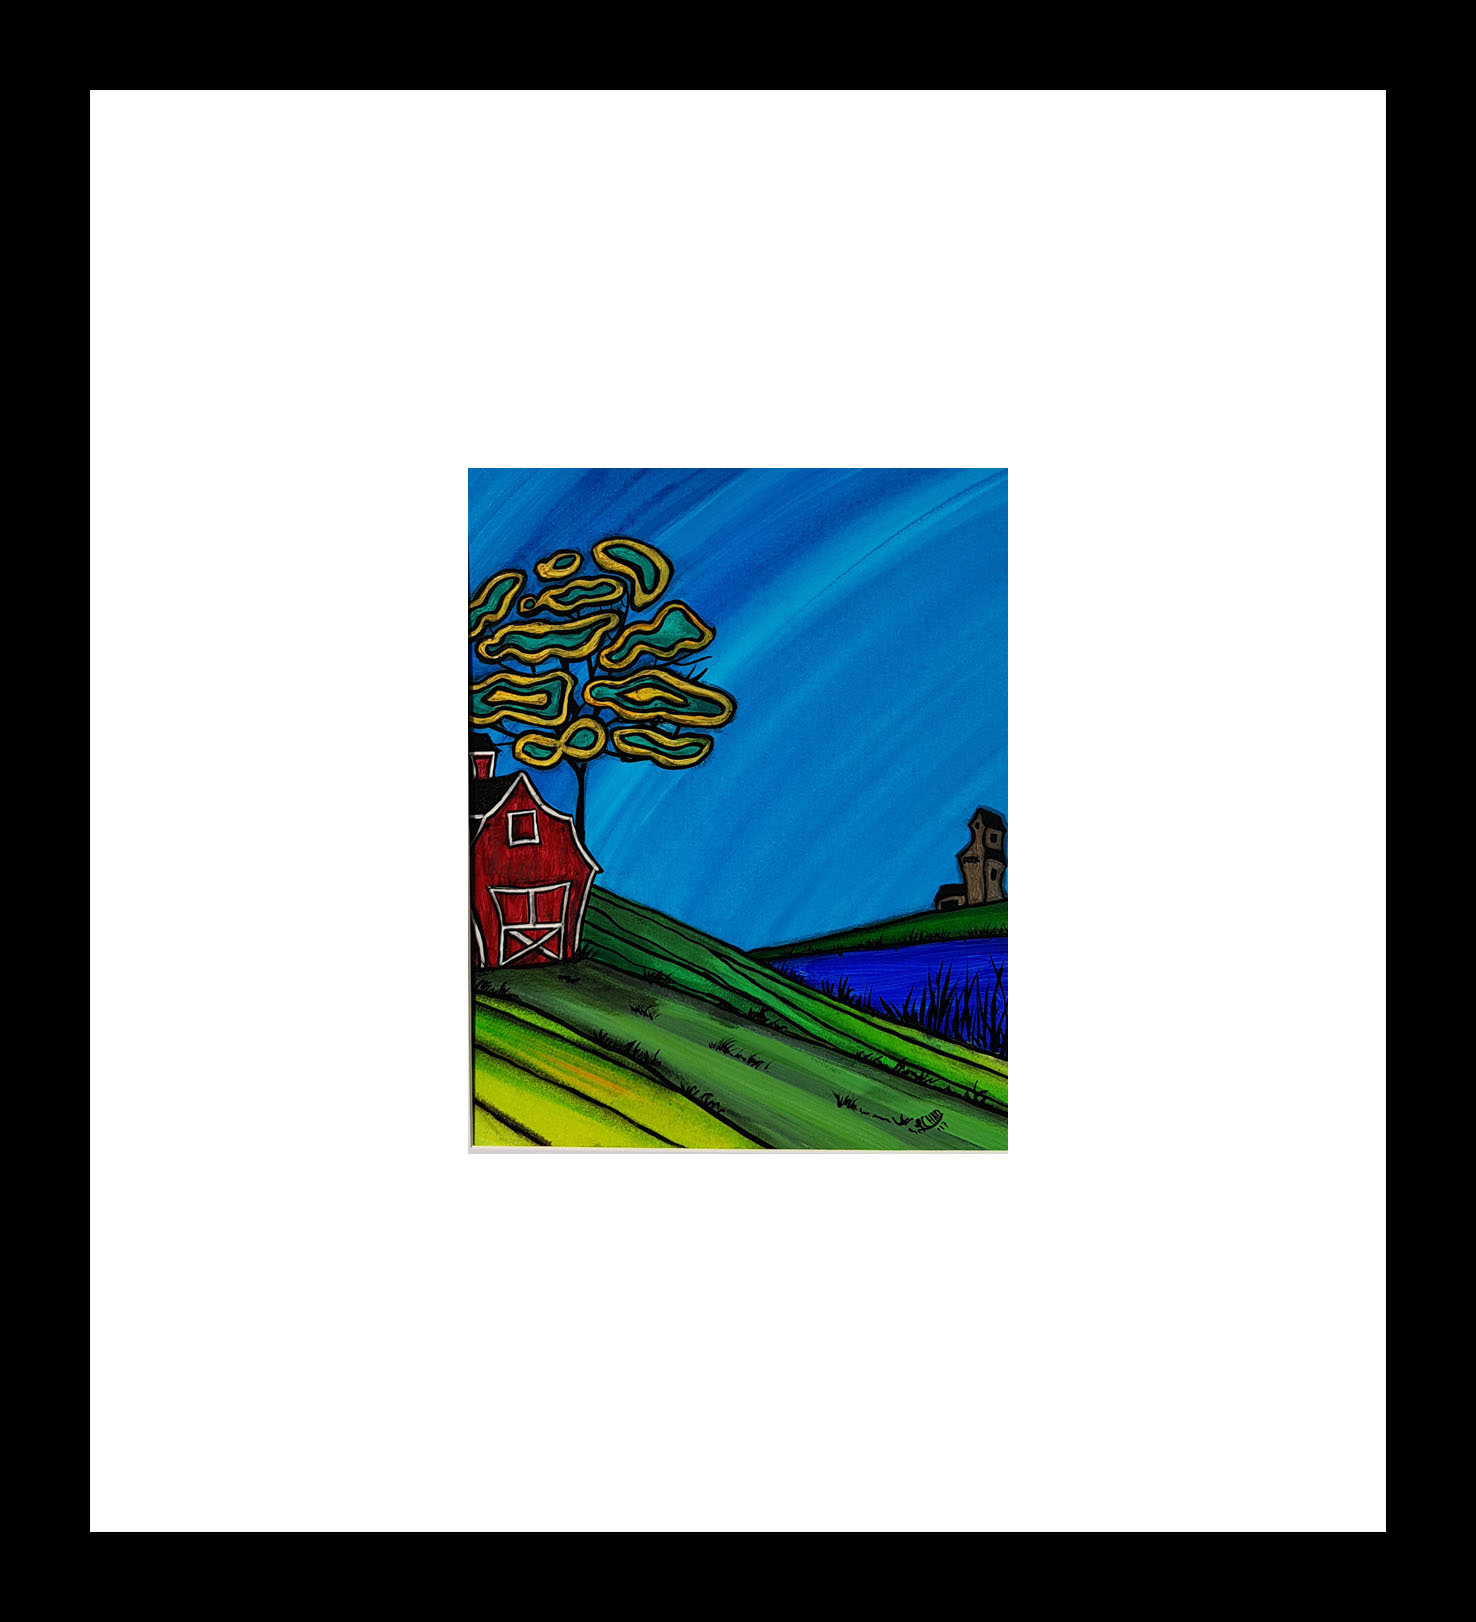 """Barn on the Hill"" [2018] Image: 7.5"" x 9.5"" Framed: 20"" x 20"" Acrylic on 246 lb. paper SOLD"